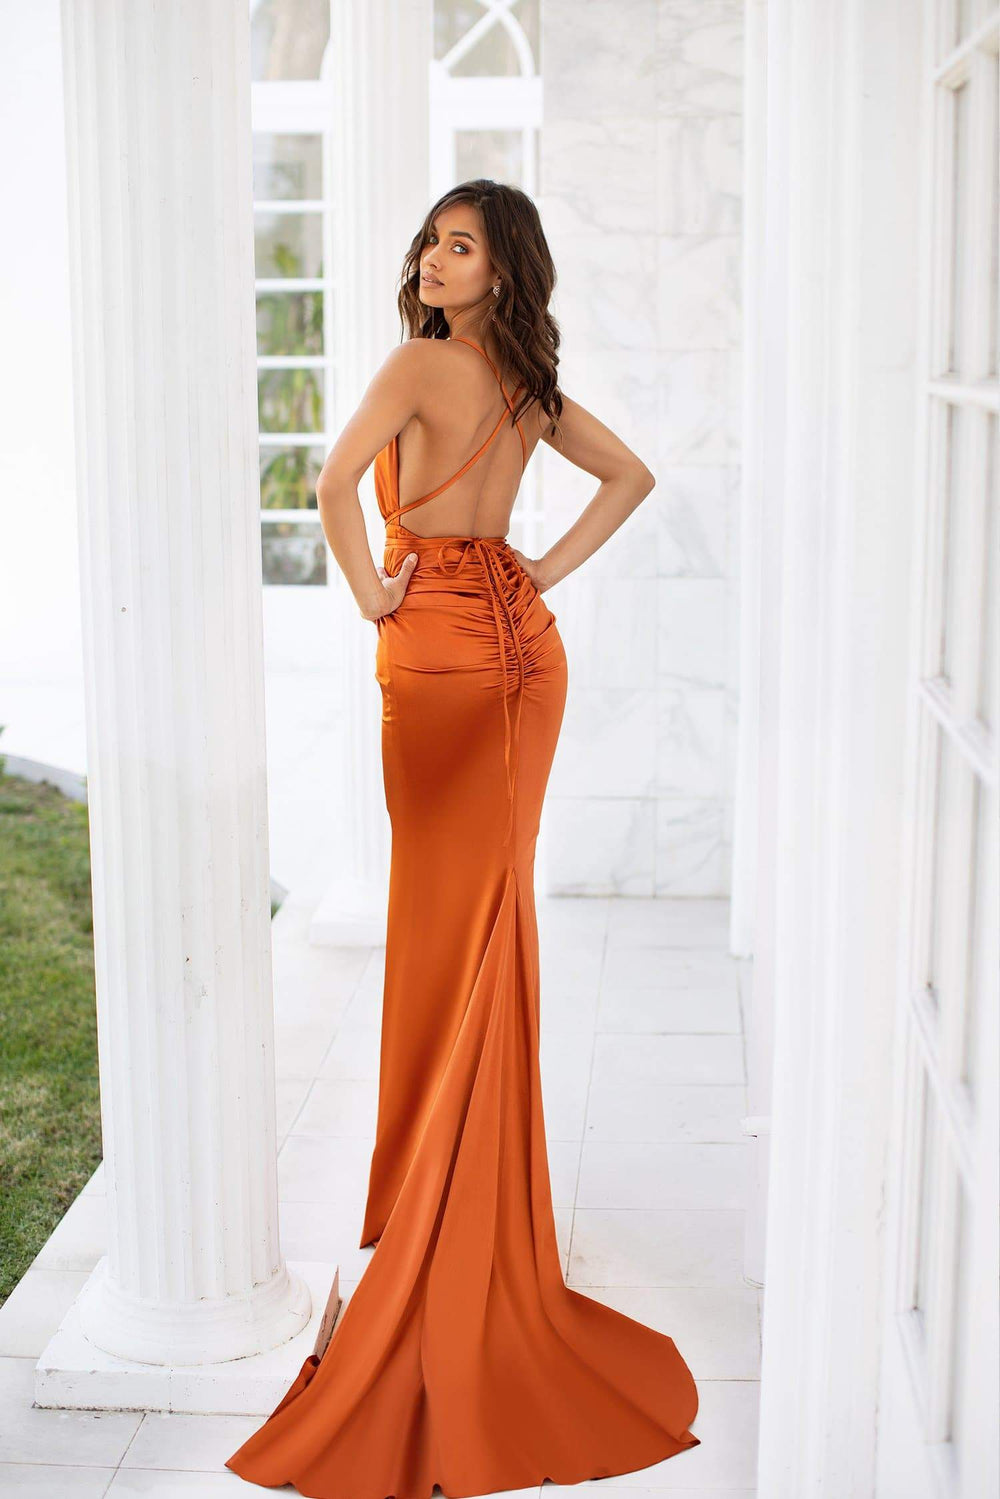 Tierra - Golden Rust Satin Plunge Halterneck Lace-Up Gown with Ruching